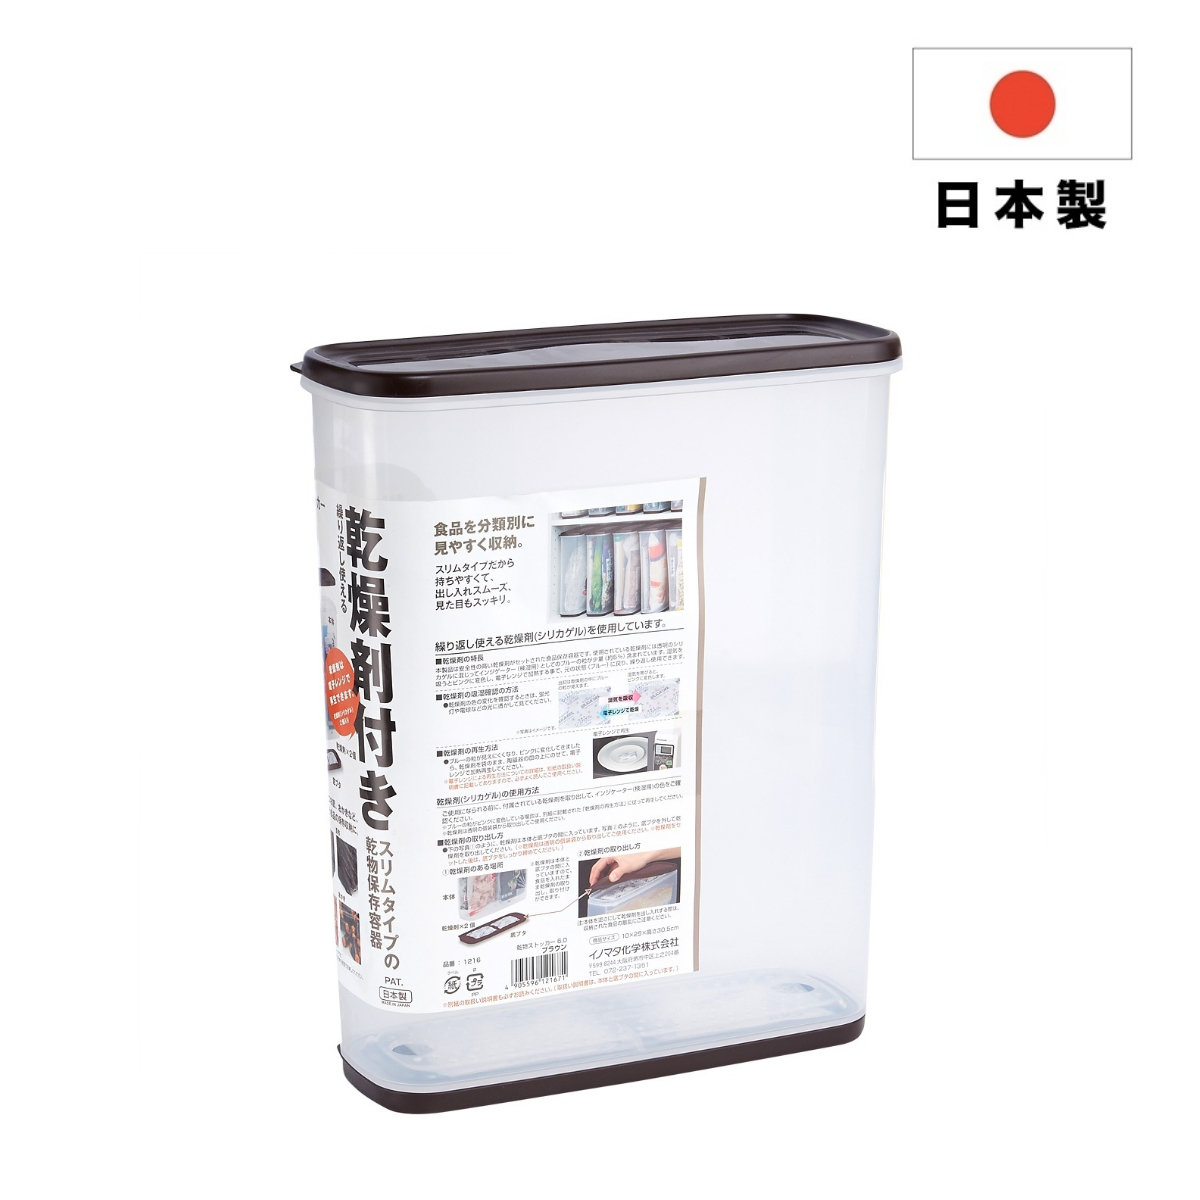 Plastic Food Container with Moisture Proof Bag